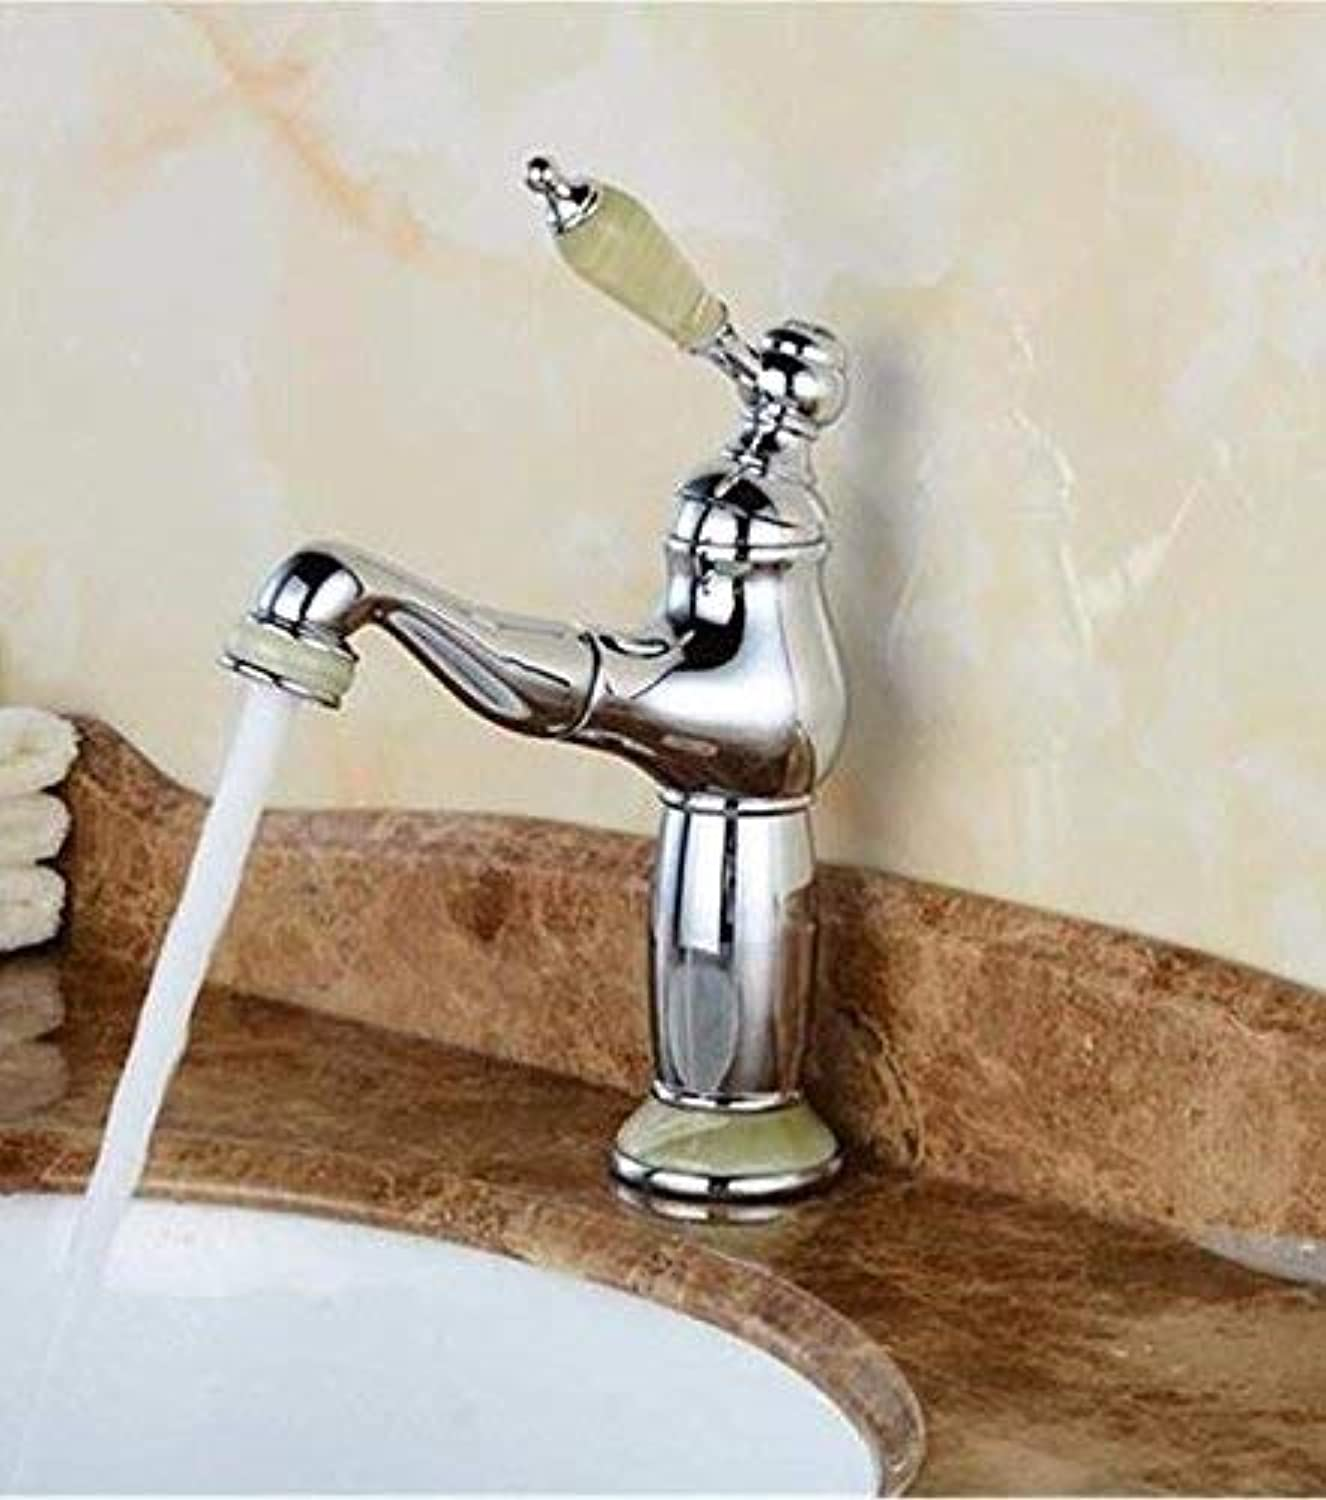 FERZA home Sink Mixer Tap Bathroom Kitchen Basin Water Tap Leakproof Save Water Natural Cock Copper Pull gold Single Hole Basin Hot And Cold Water Taps For F